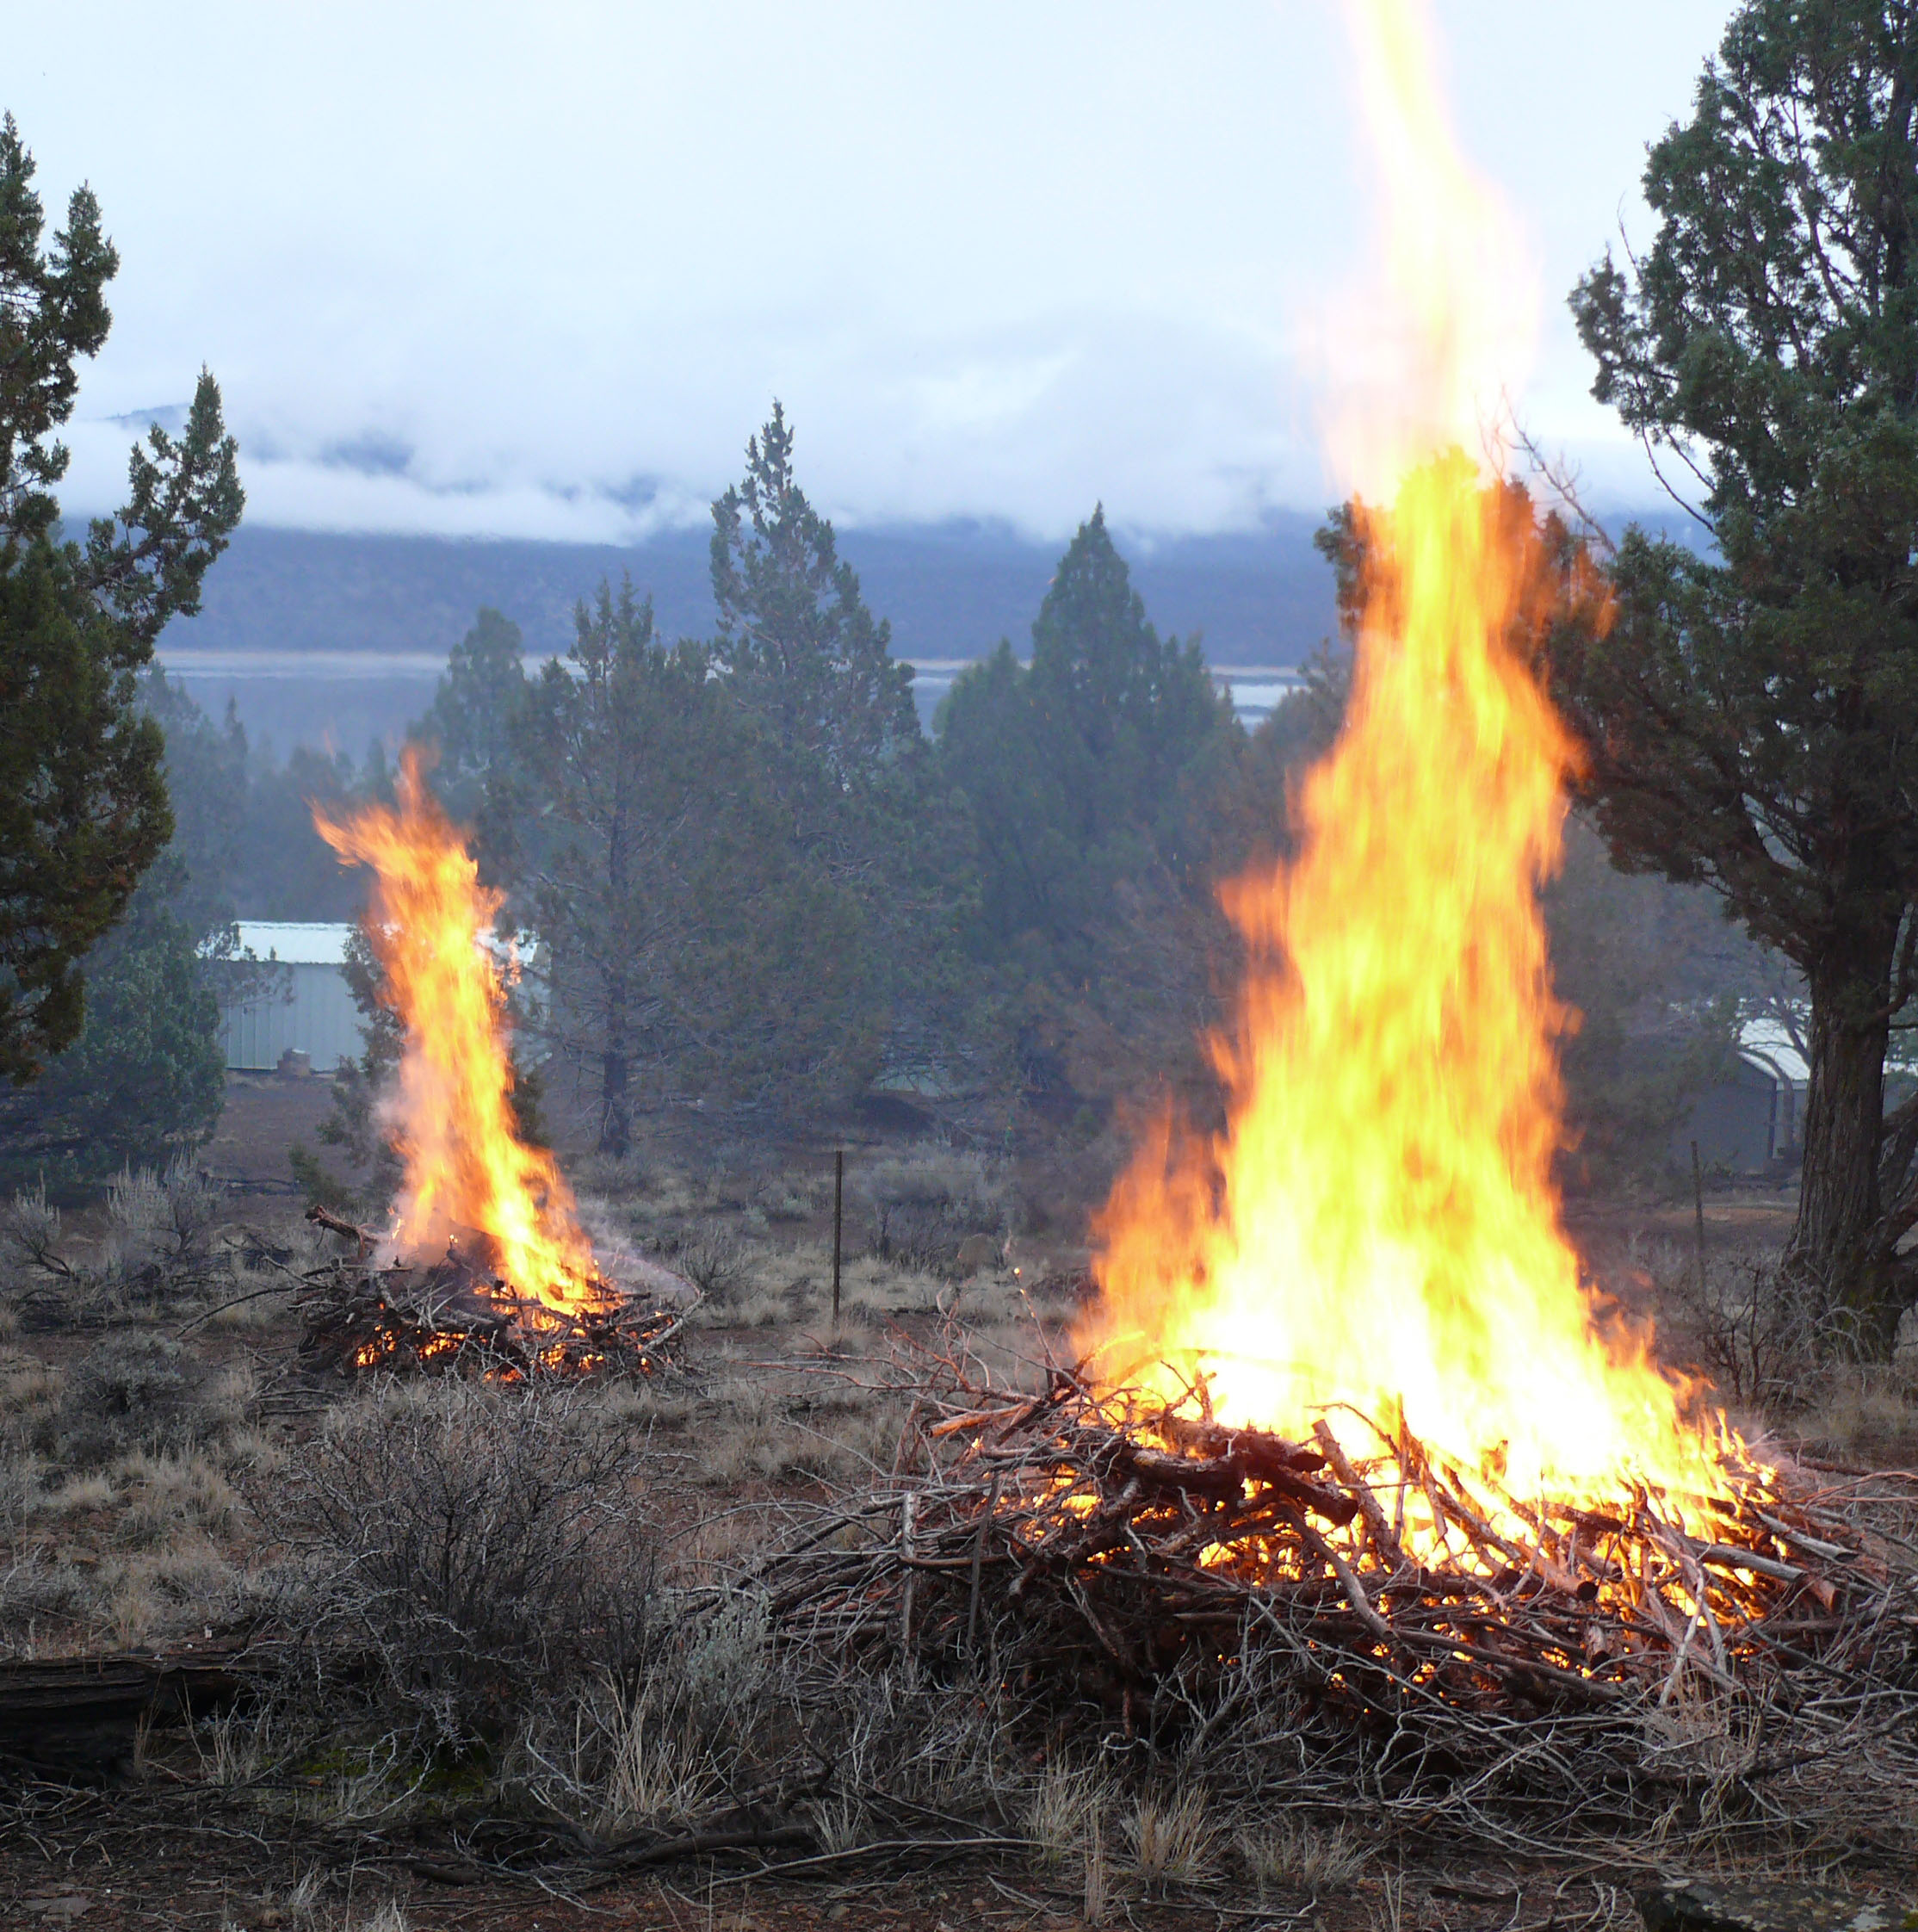 blm crews complete fire safety  u2013 land health project at